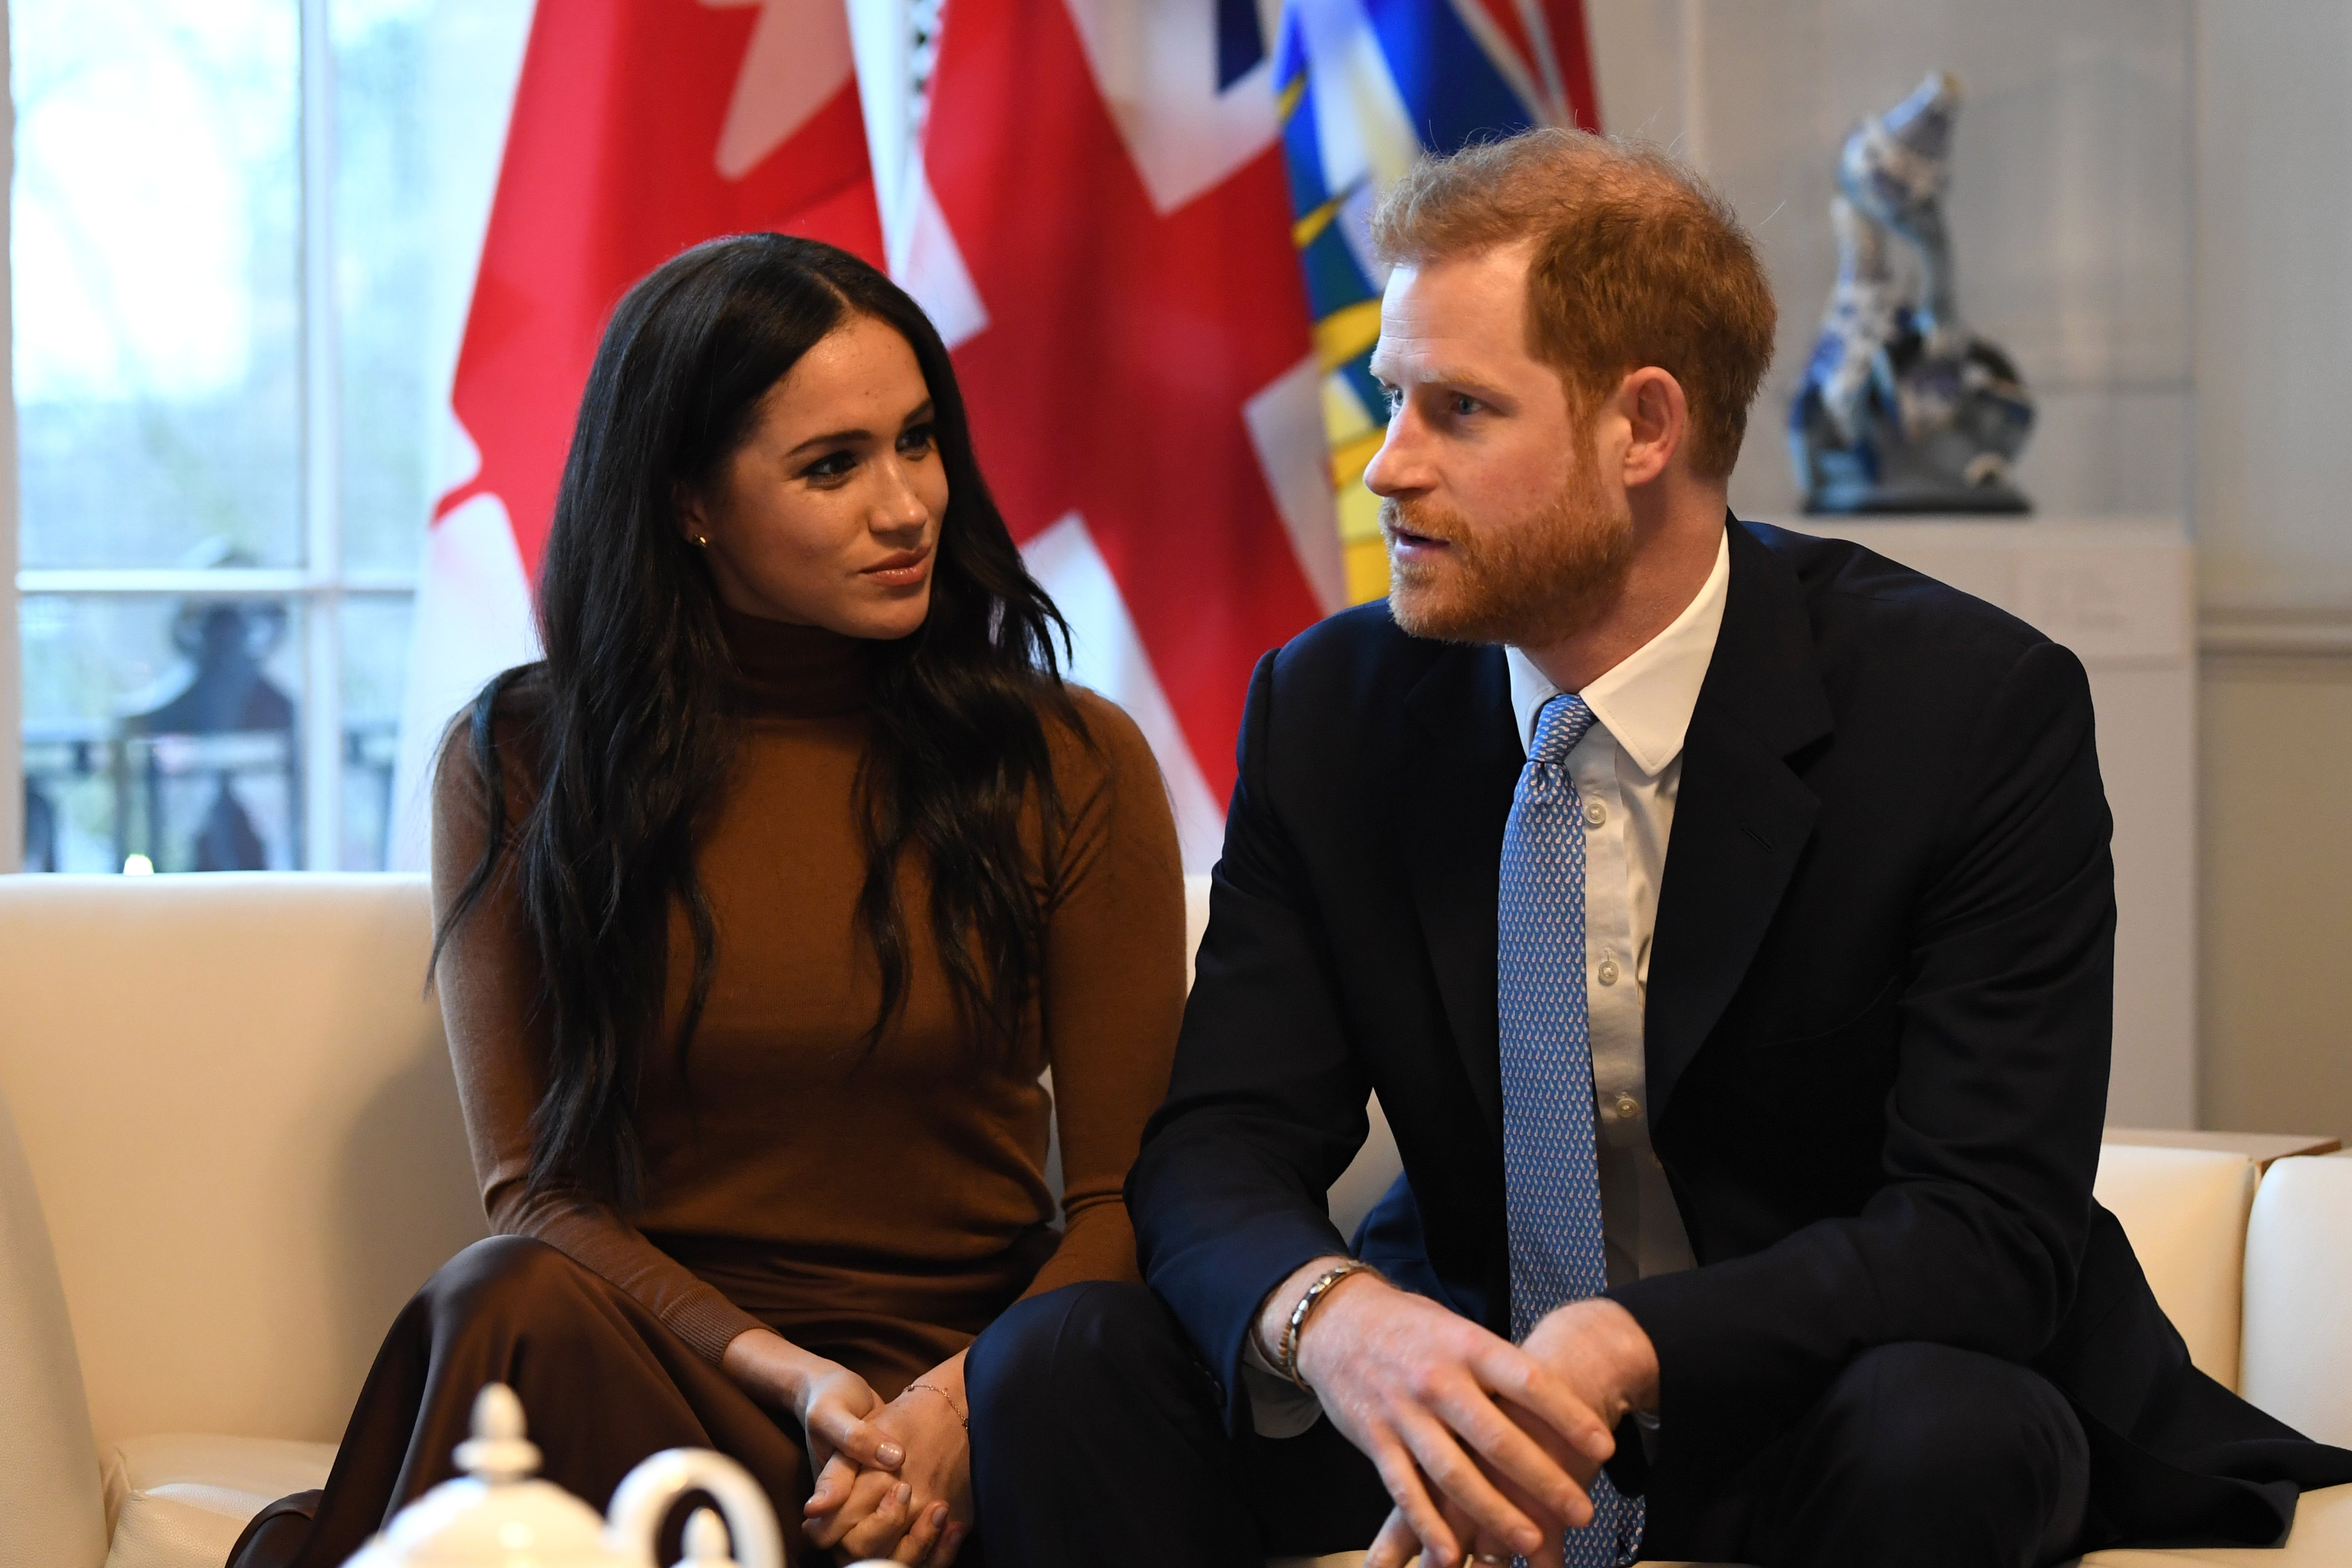 Prince Harry and Meghan Markle during their visit to Canada House on January 7, 2020 | Source: Getty Images.